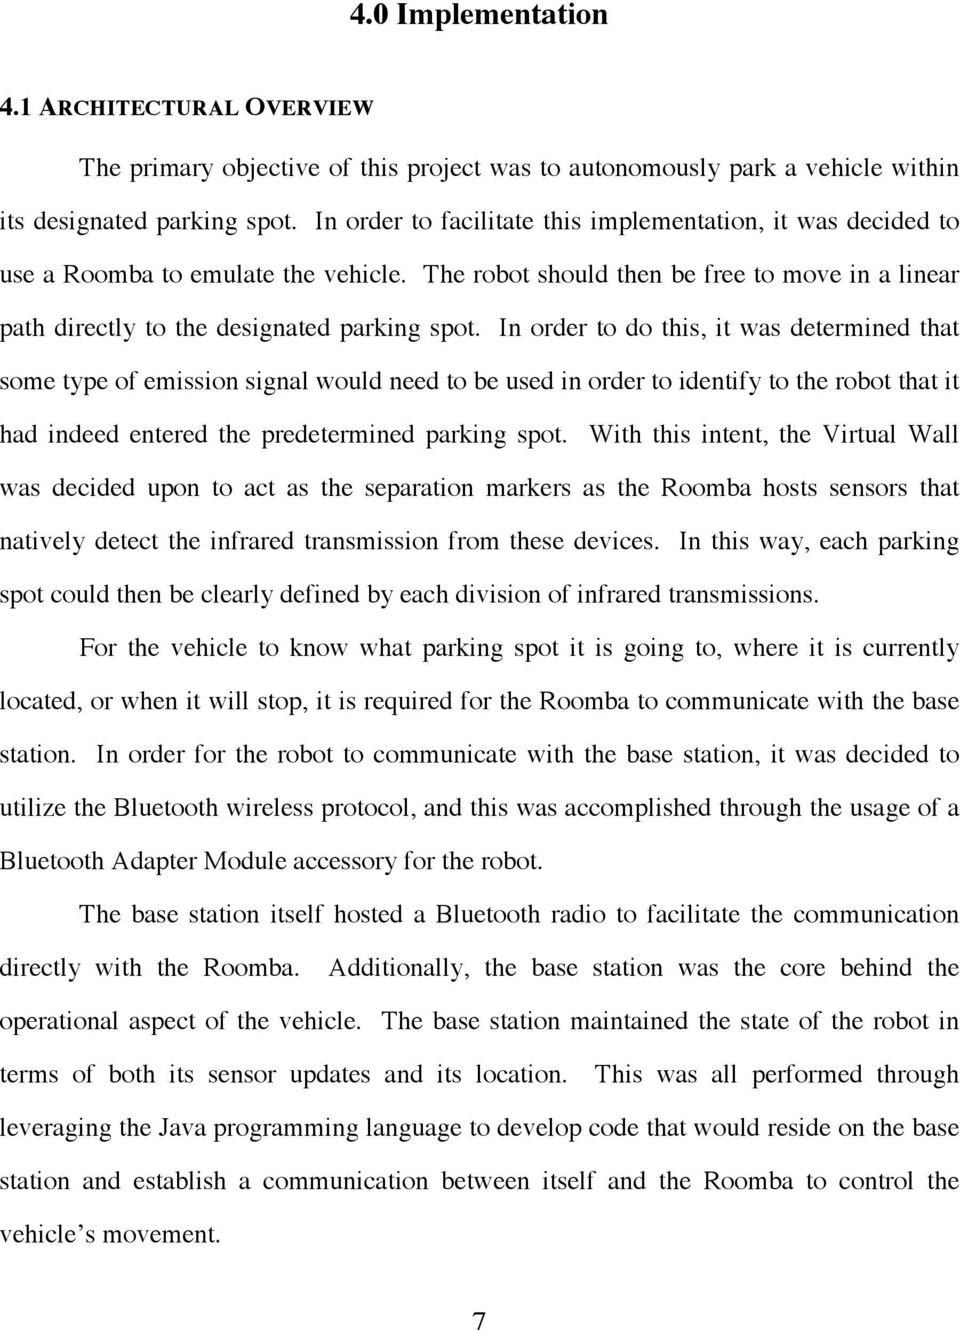 In order to do this, it was determined that some type of emission signal would need to be used in order to identify to the robot that it had indeed entered the predetermined parking spot.